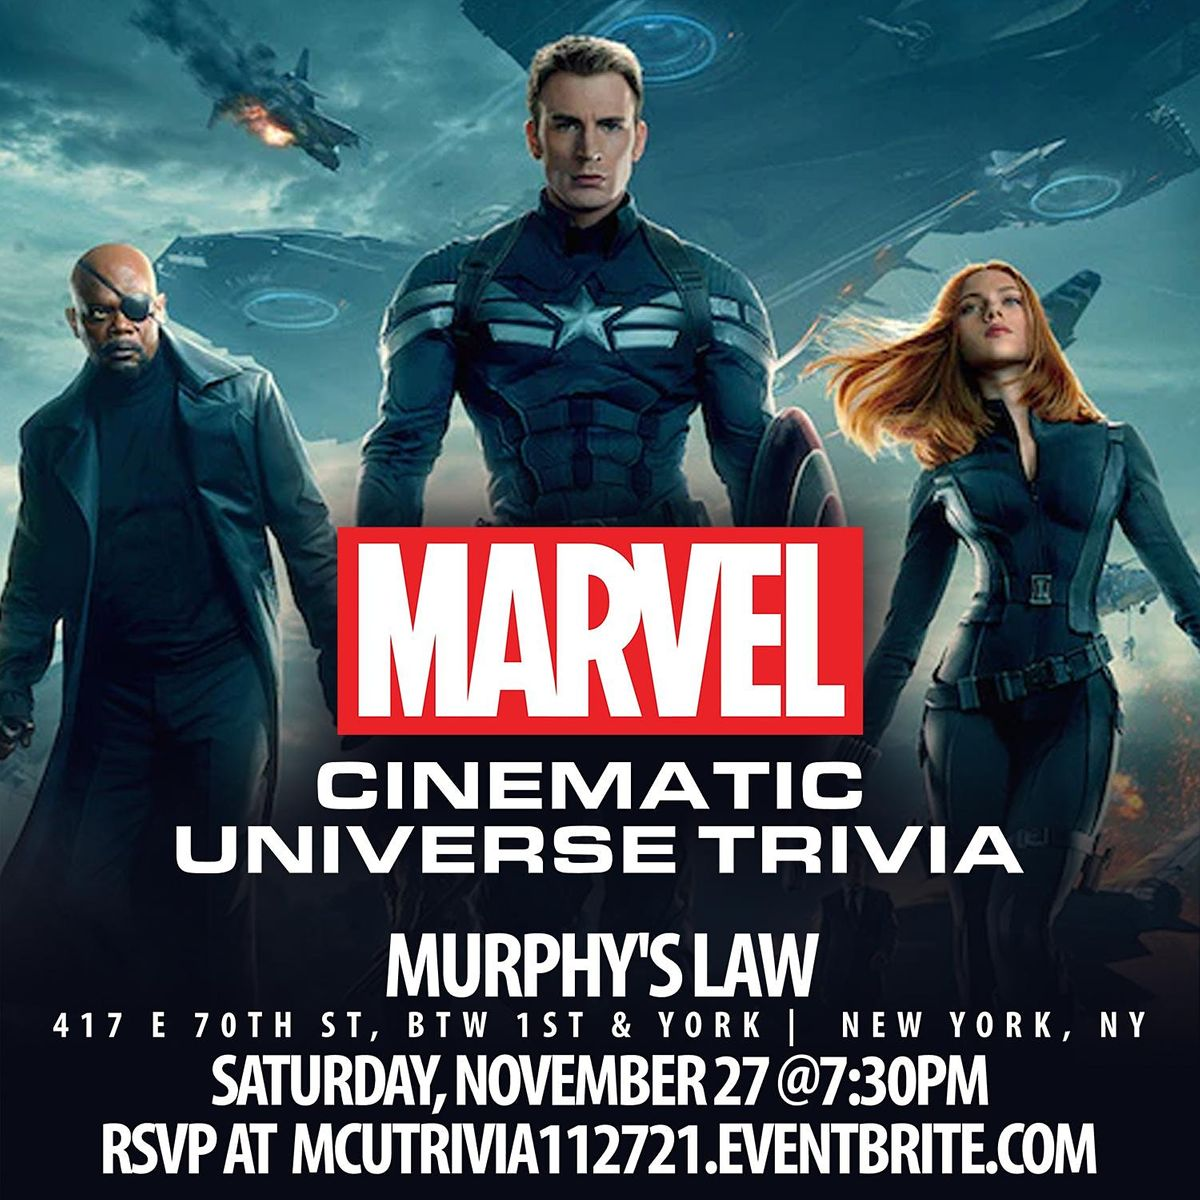 Marvel Cinematic Universe Trivia, 27 November | Event in New York | AllEvents.in